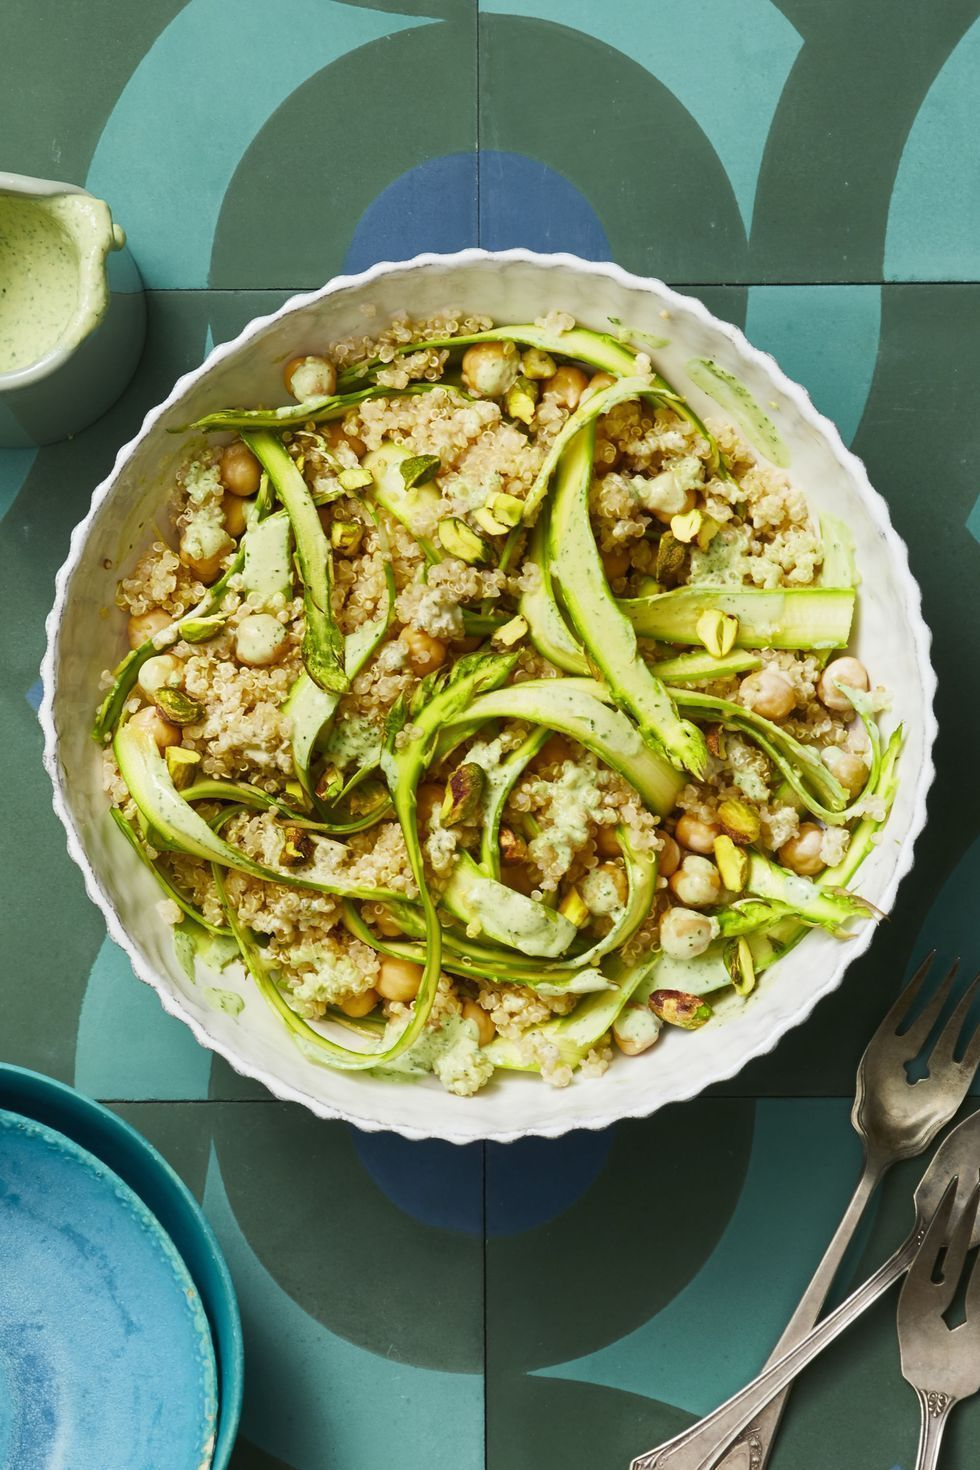 Tahini-Lemon Quinoa with Asparagus Ribbons